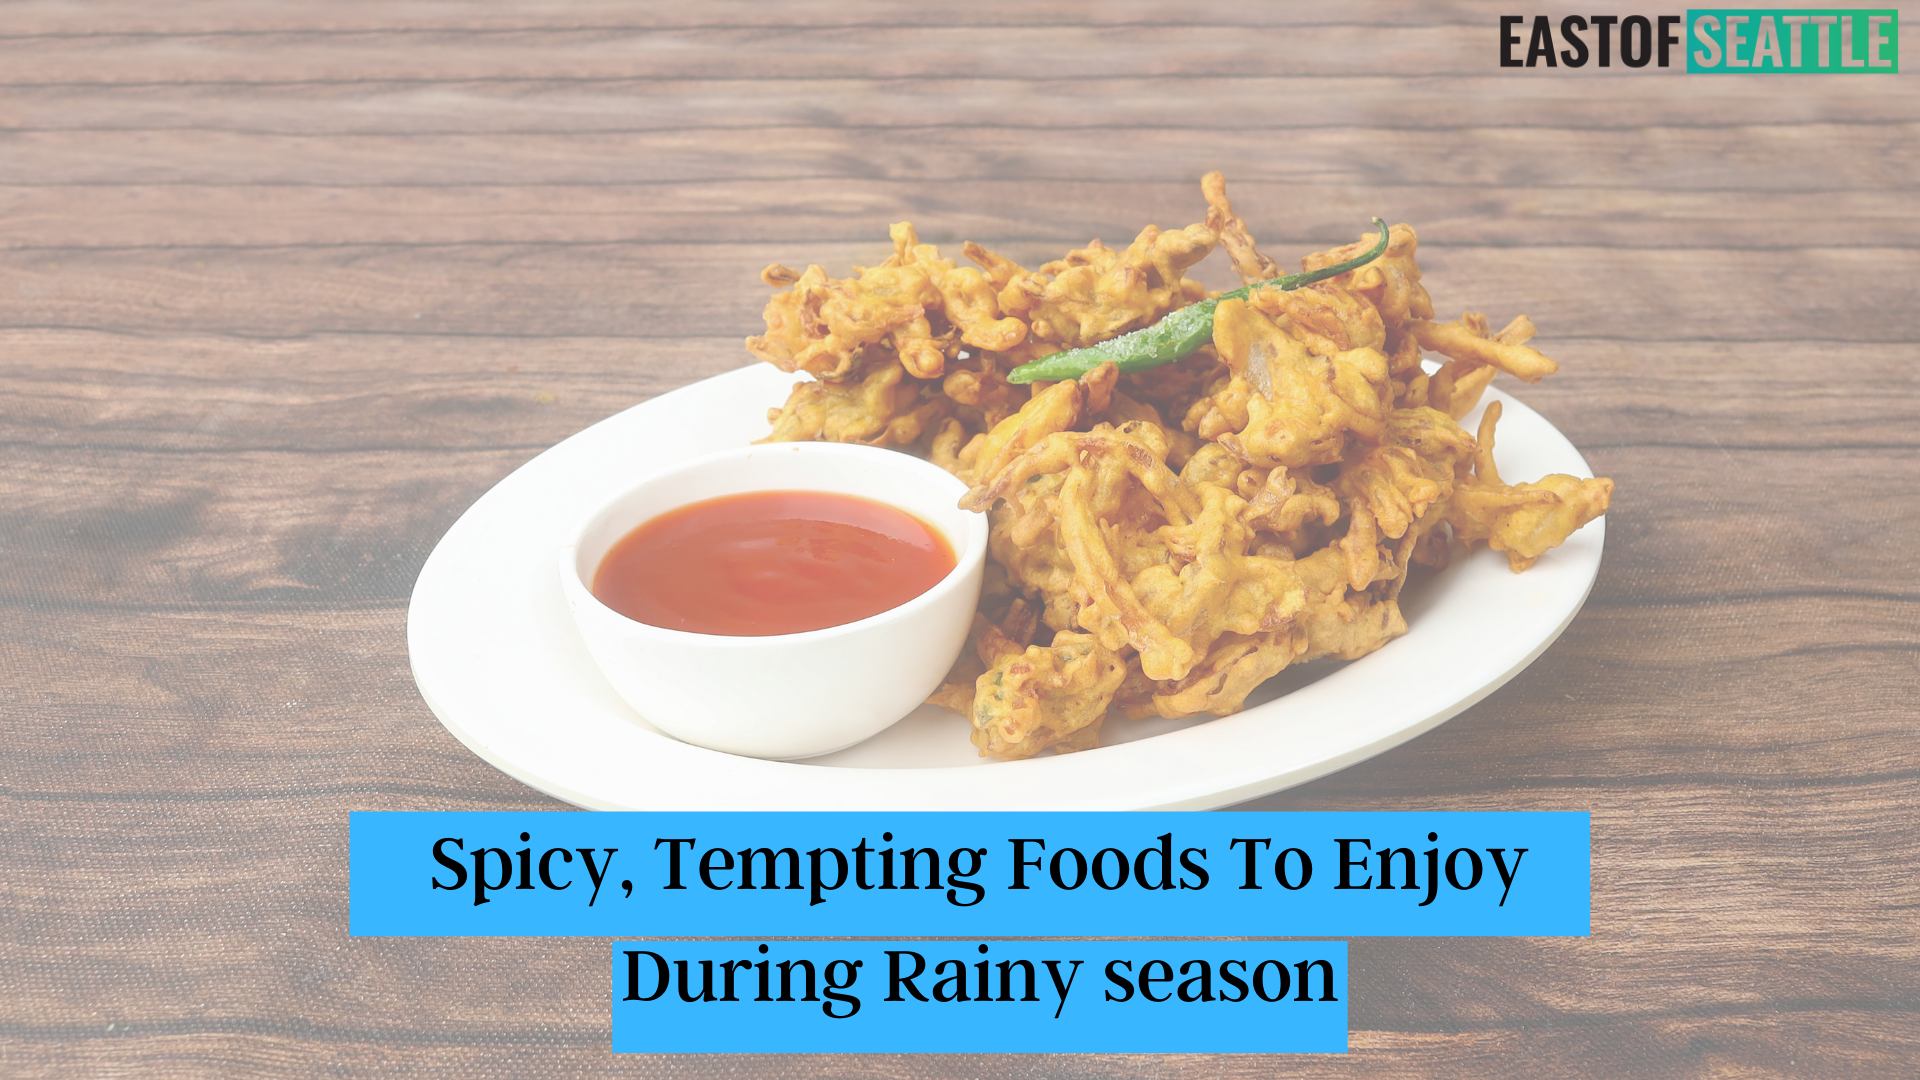 Spicy, Tempting Foods To Enjoy During Rainy season